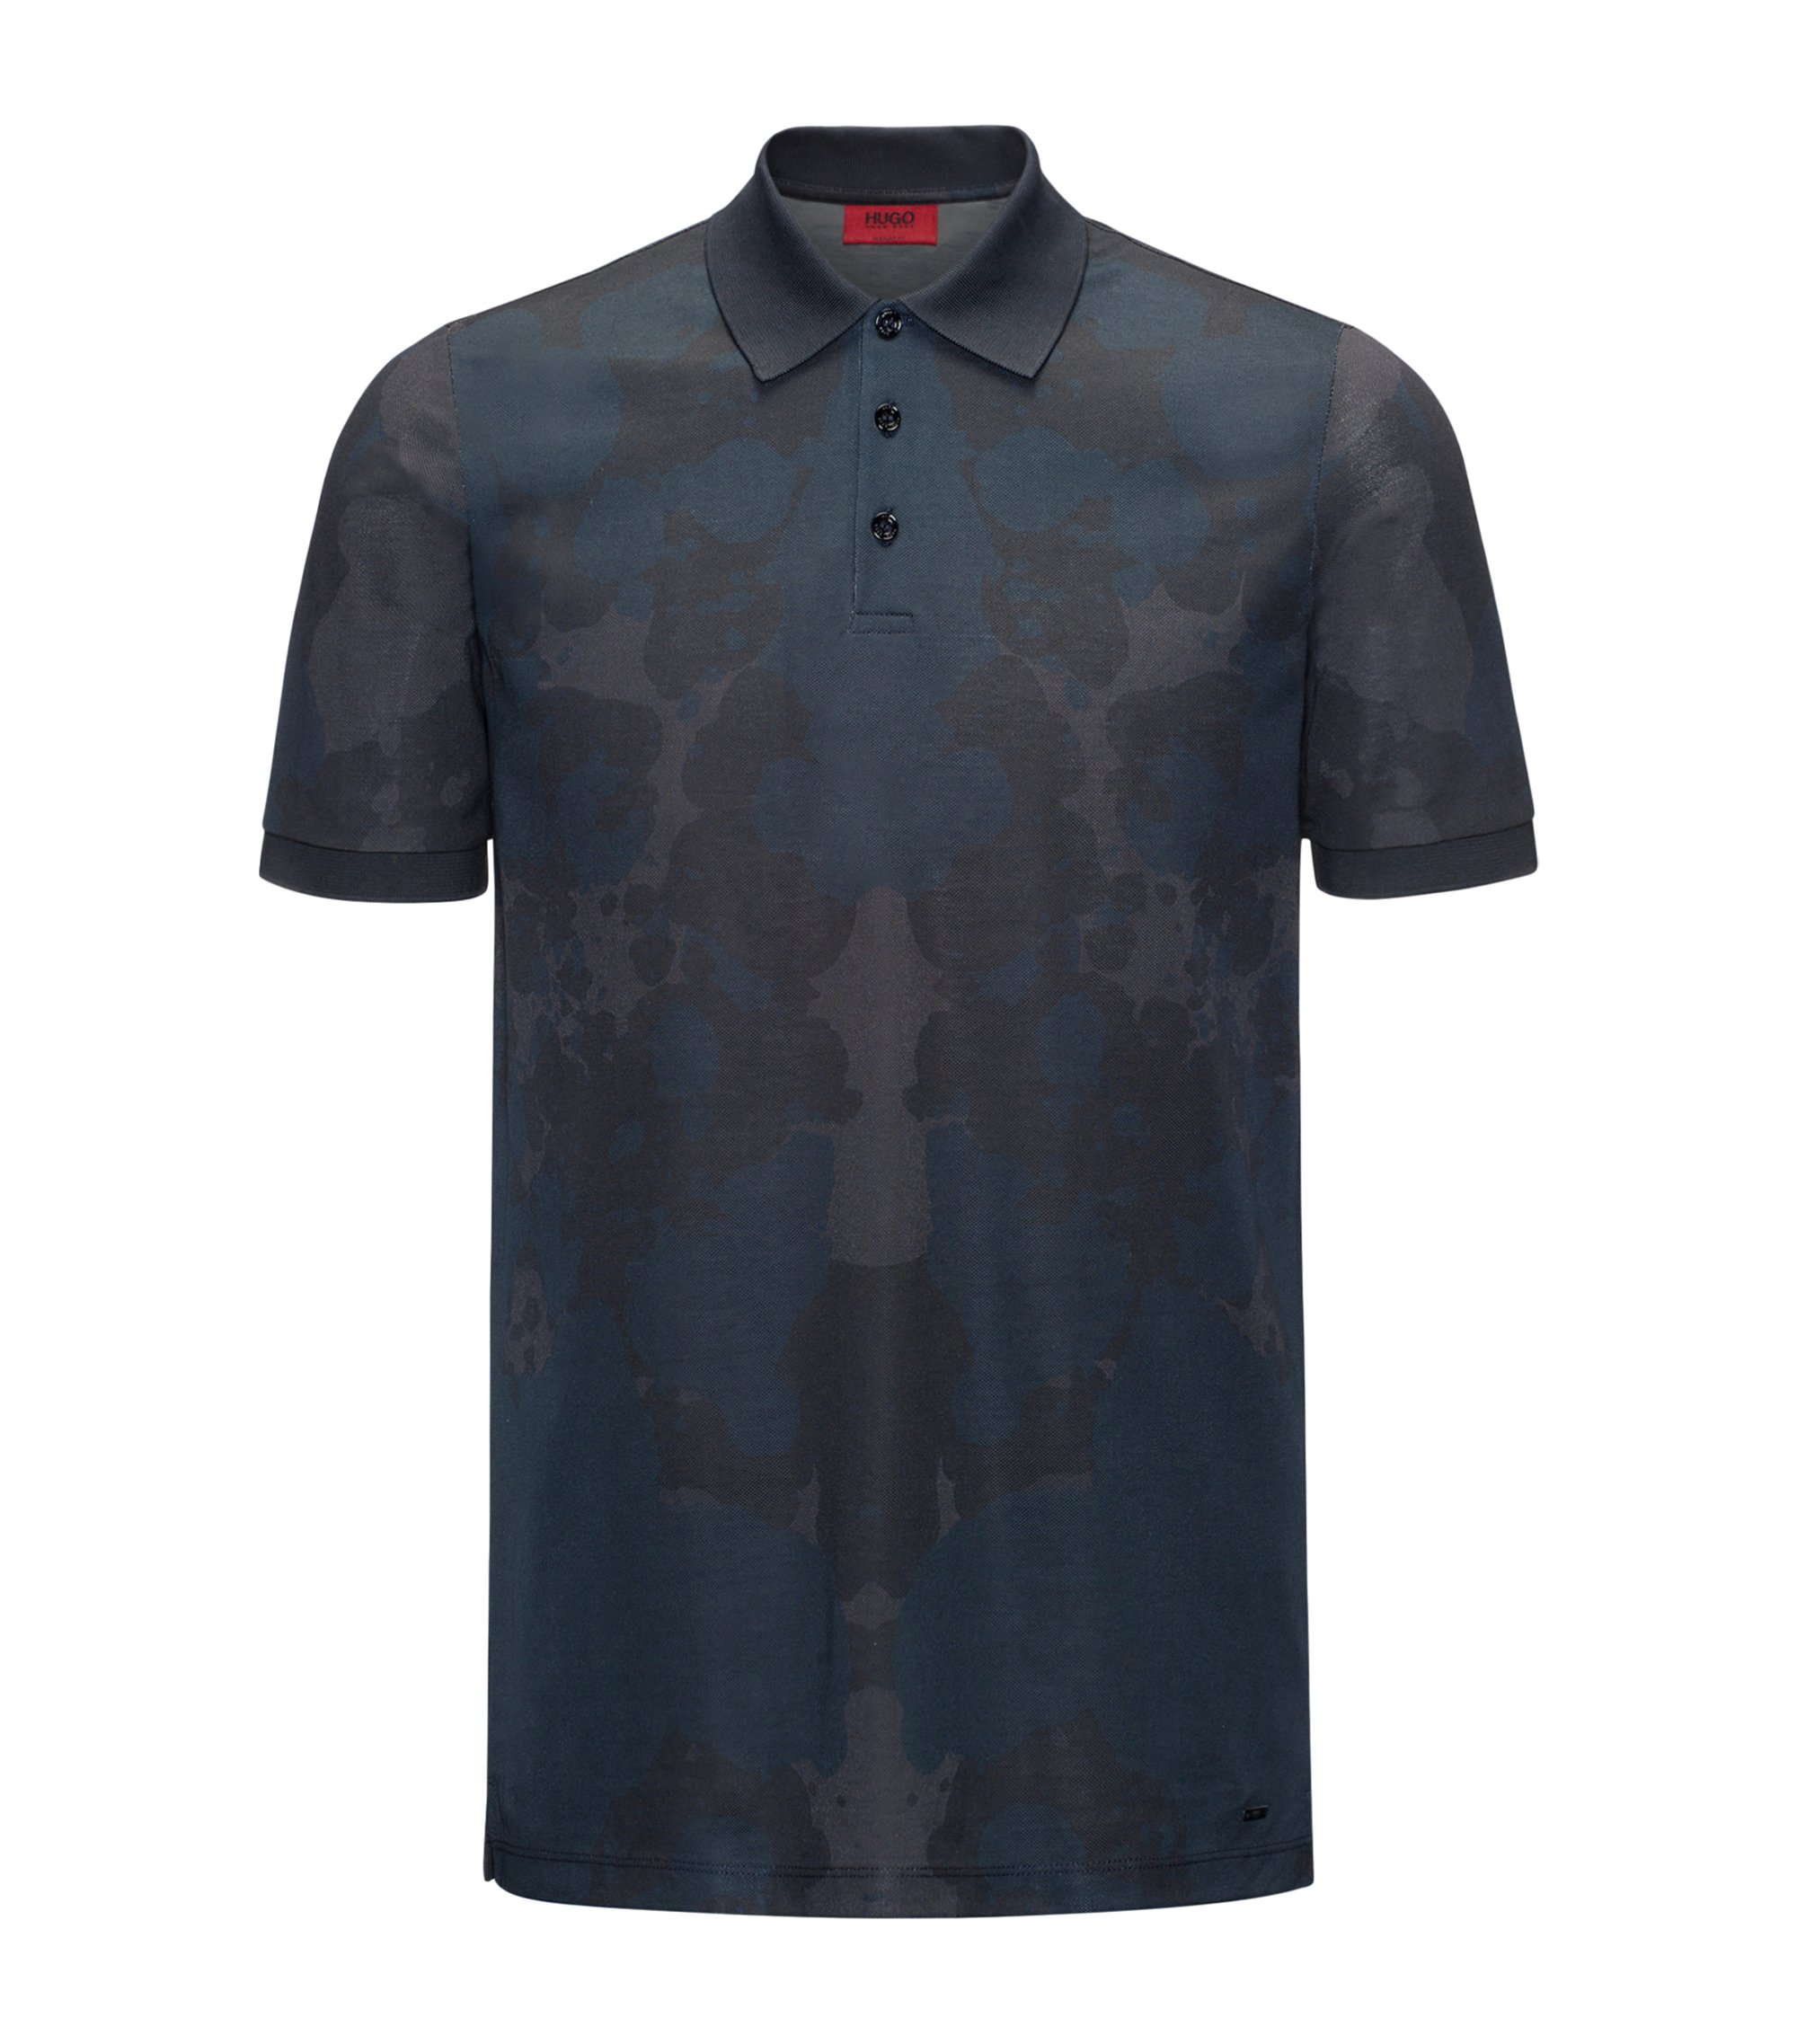 Rorschach-Print Cotton Polo Shirt, Slim Fit | Dridge, Dark Blue